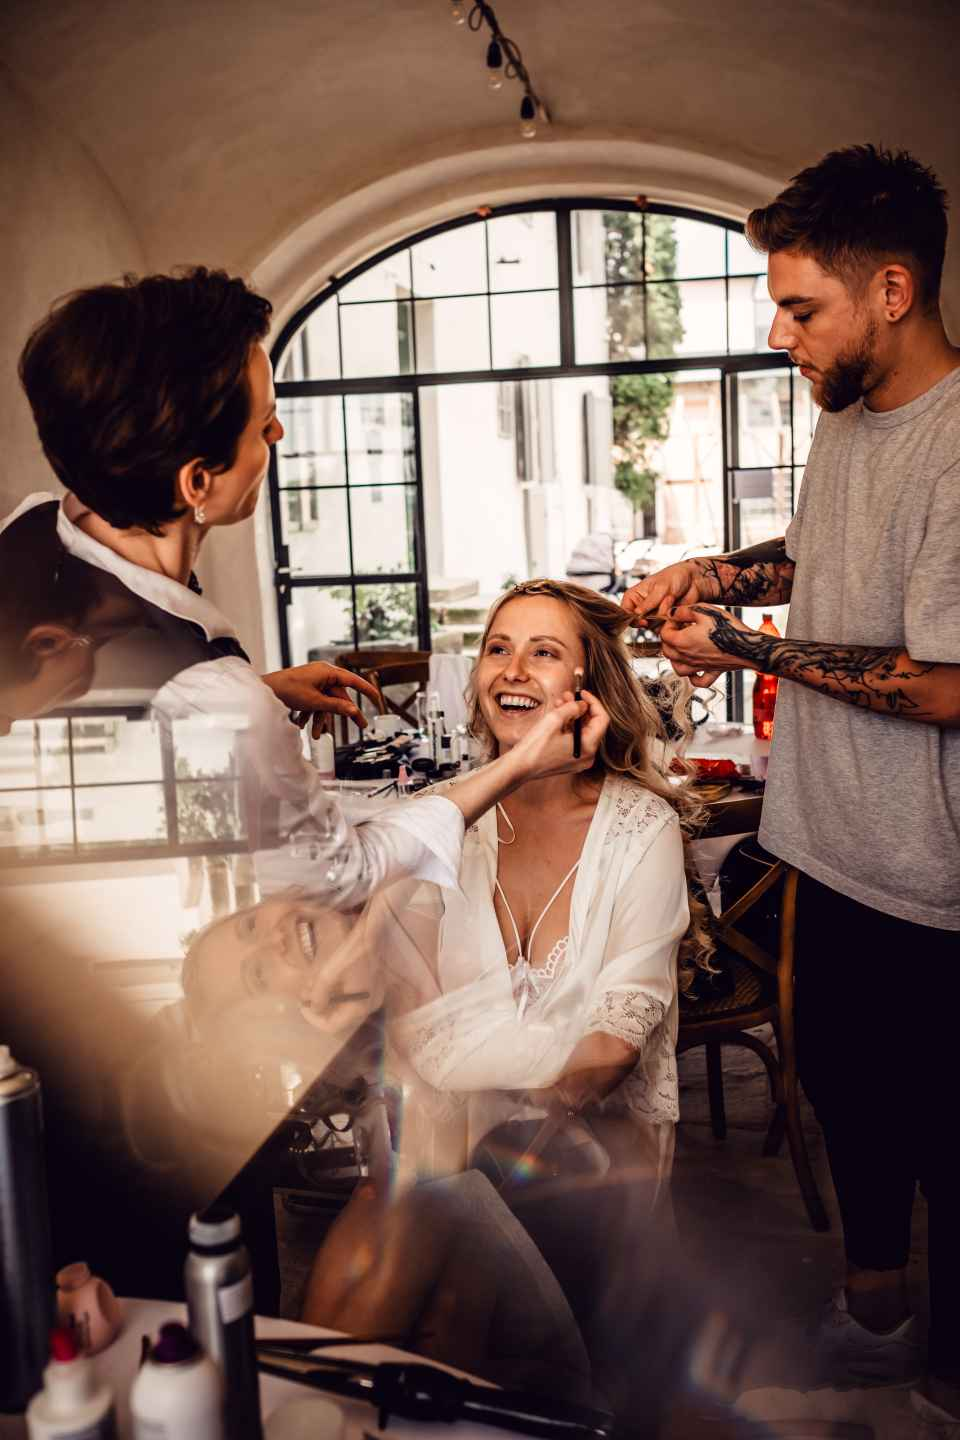 As a general rule, it's the bride who is supposed to pay for the bridesmaids hair and makeup